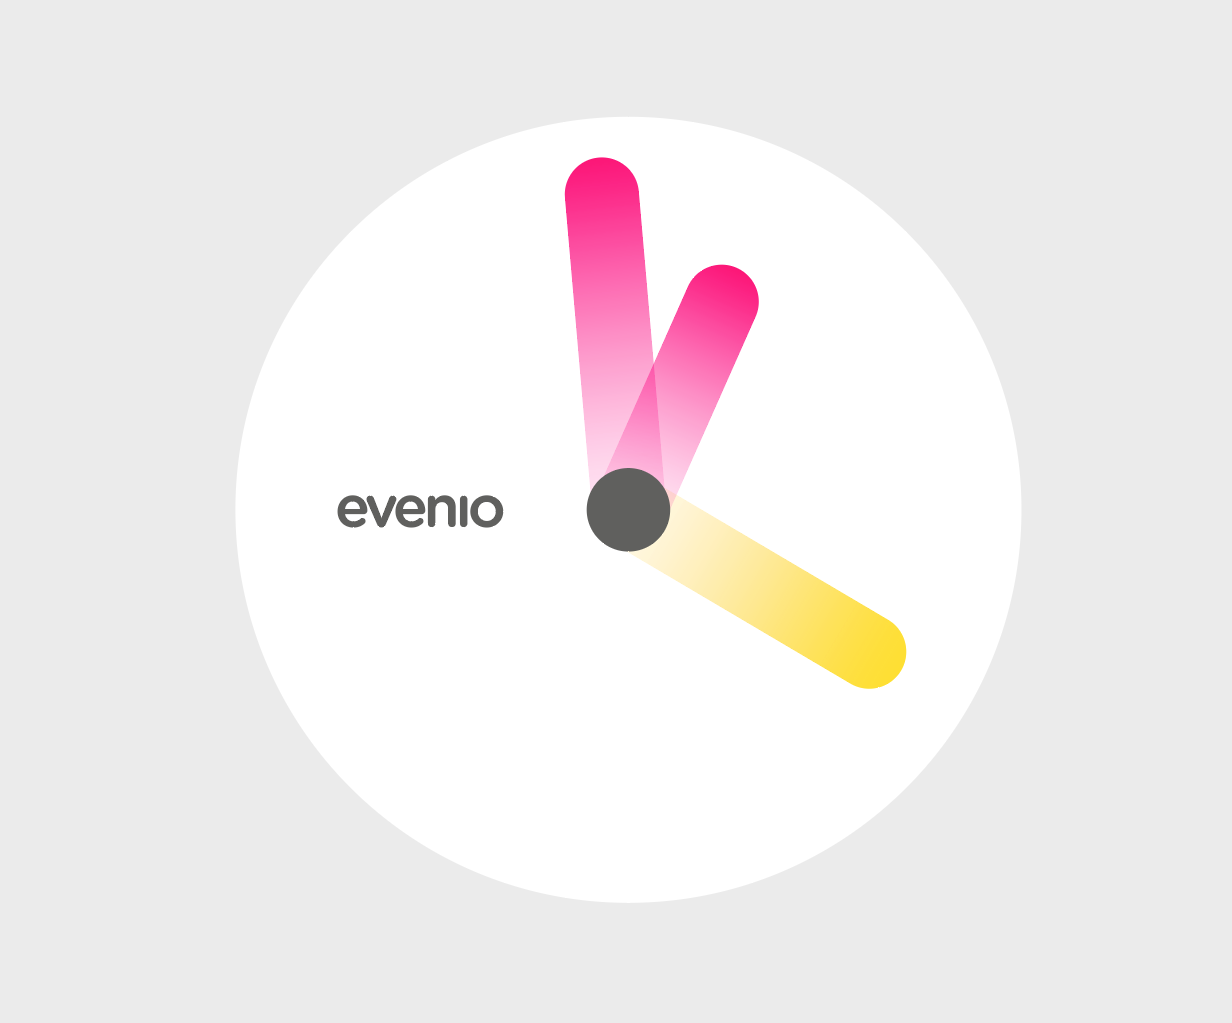 visualization of the clock based on the idea for the evenio logo showing rays radiating in different directions